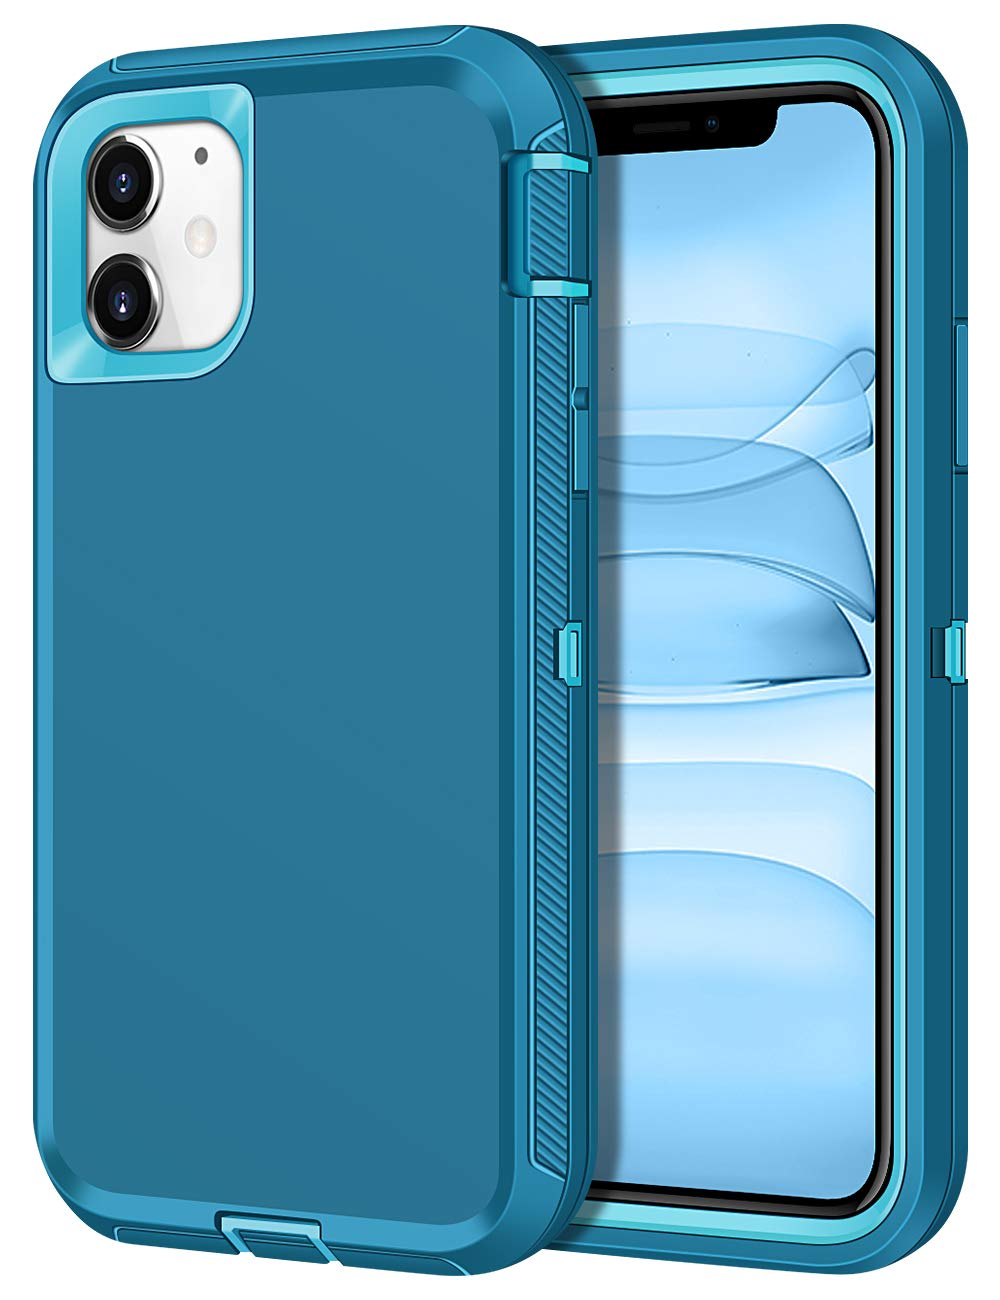 CHEERINGARY Case for iPhone 11 Case Protective Shockproof Heavy Duty Anti-Scratch Cover iPhone 11 Case for Men Women Full Body Protection Dust Proof Anti-Slip Cover for iPhone 11 6.1 inches Teal Green